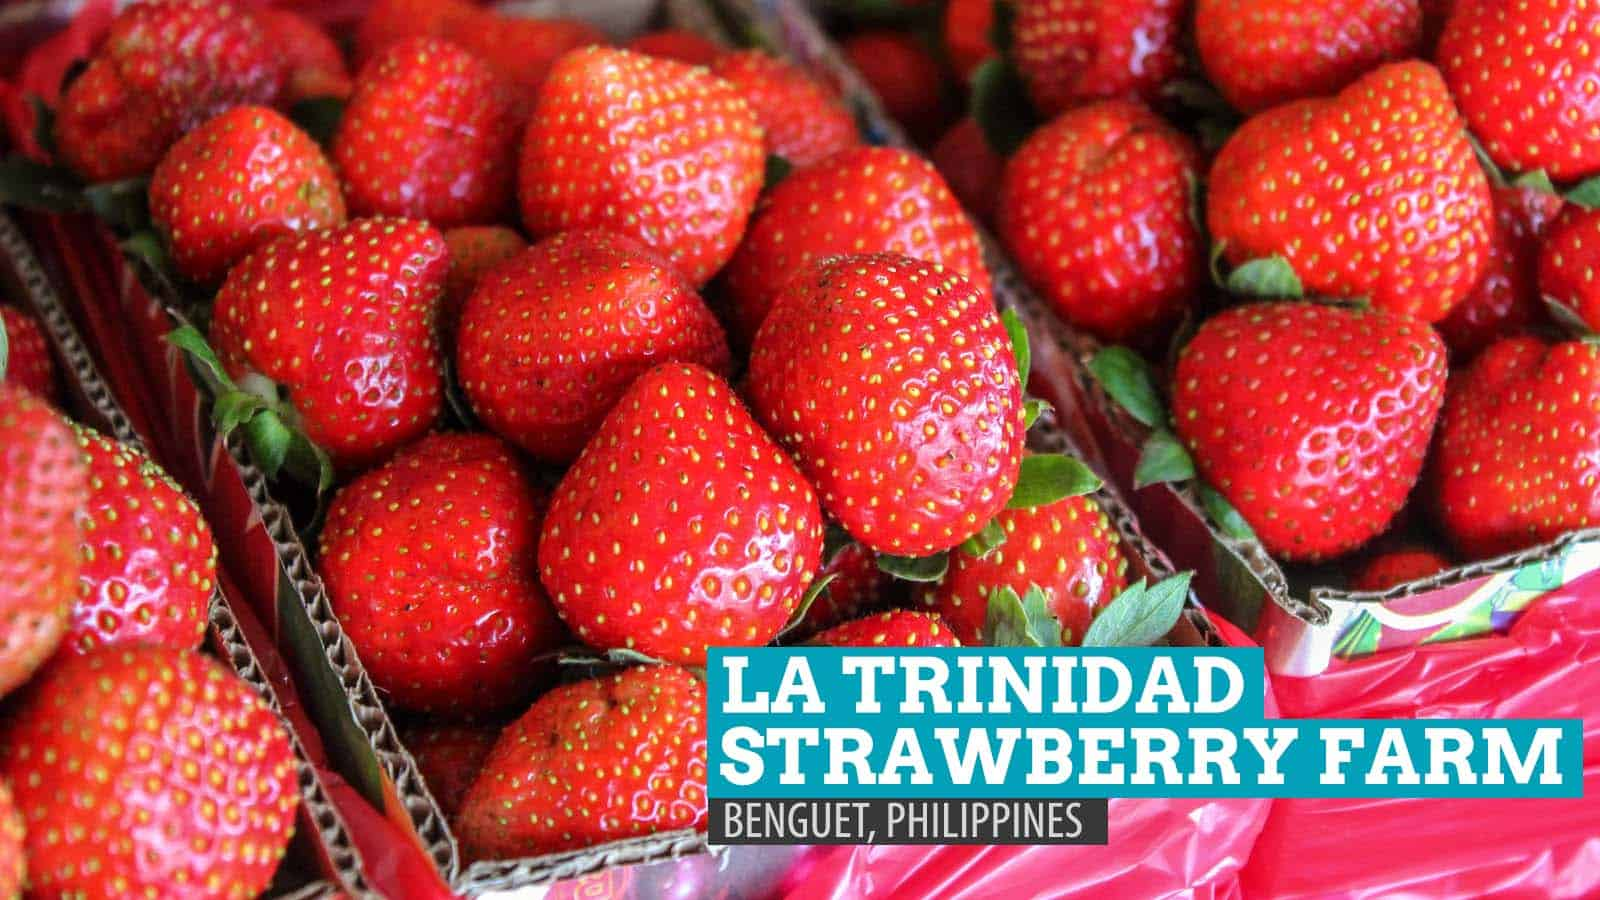 La Trinidad Strawberry Farm: Heart-shaped Madness in Benguet, Philippines